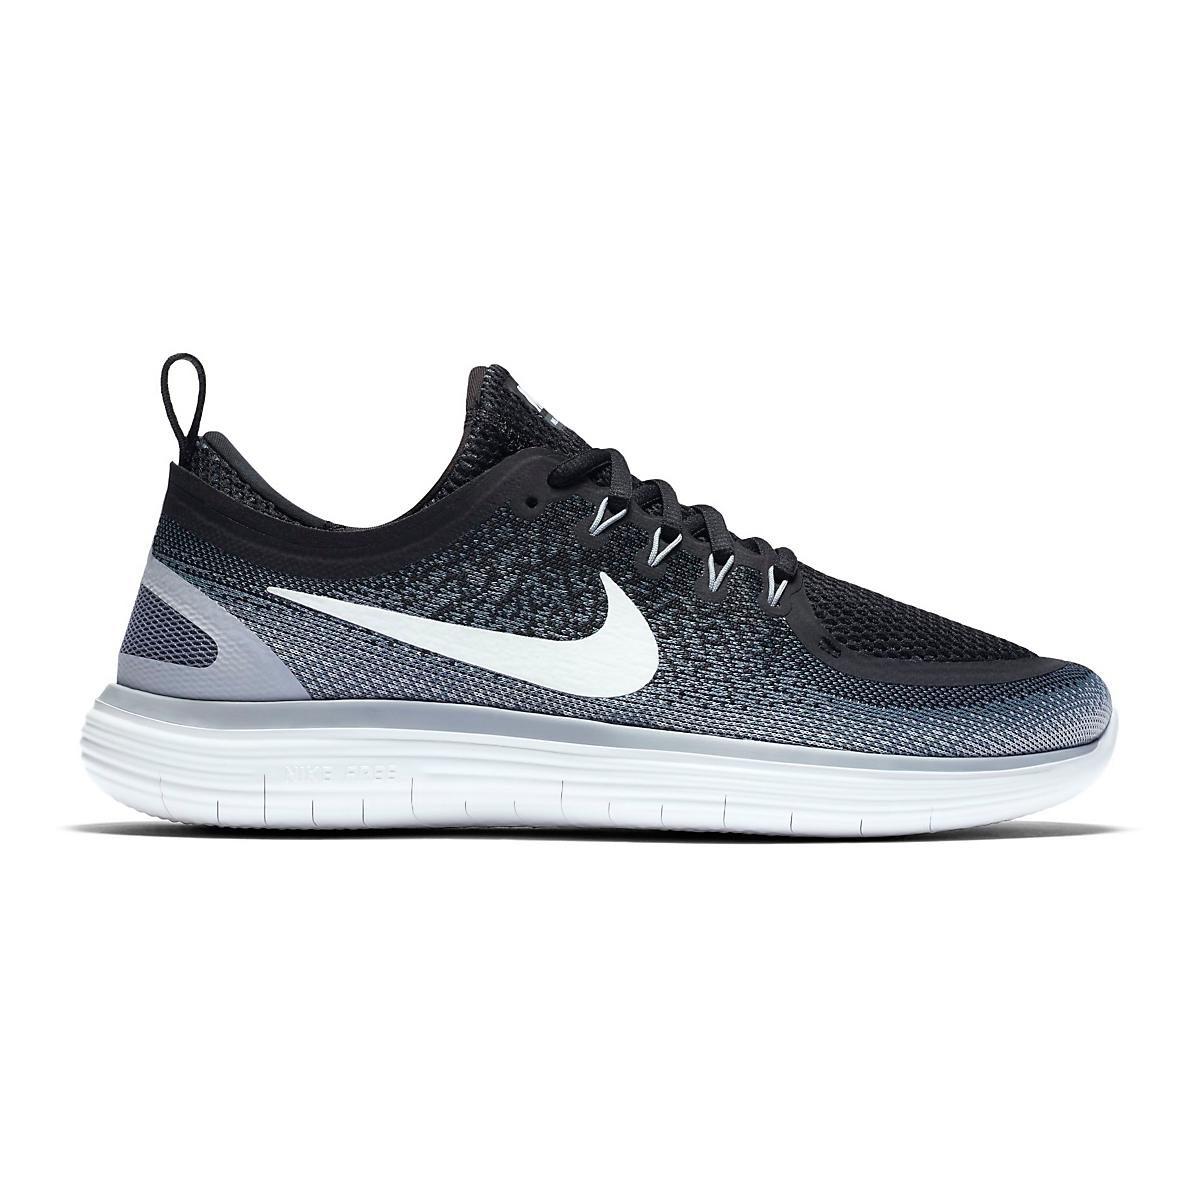 a9ff05166428 Womens Nike Free RN Distance 2 Running Shoe at Road Runner Sports